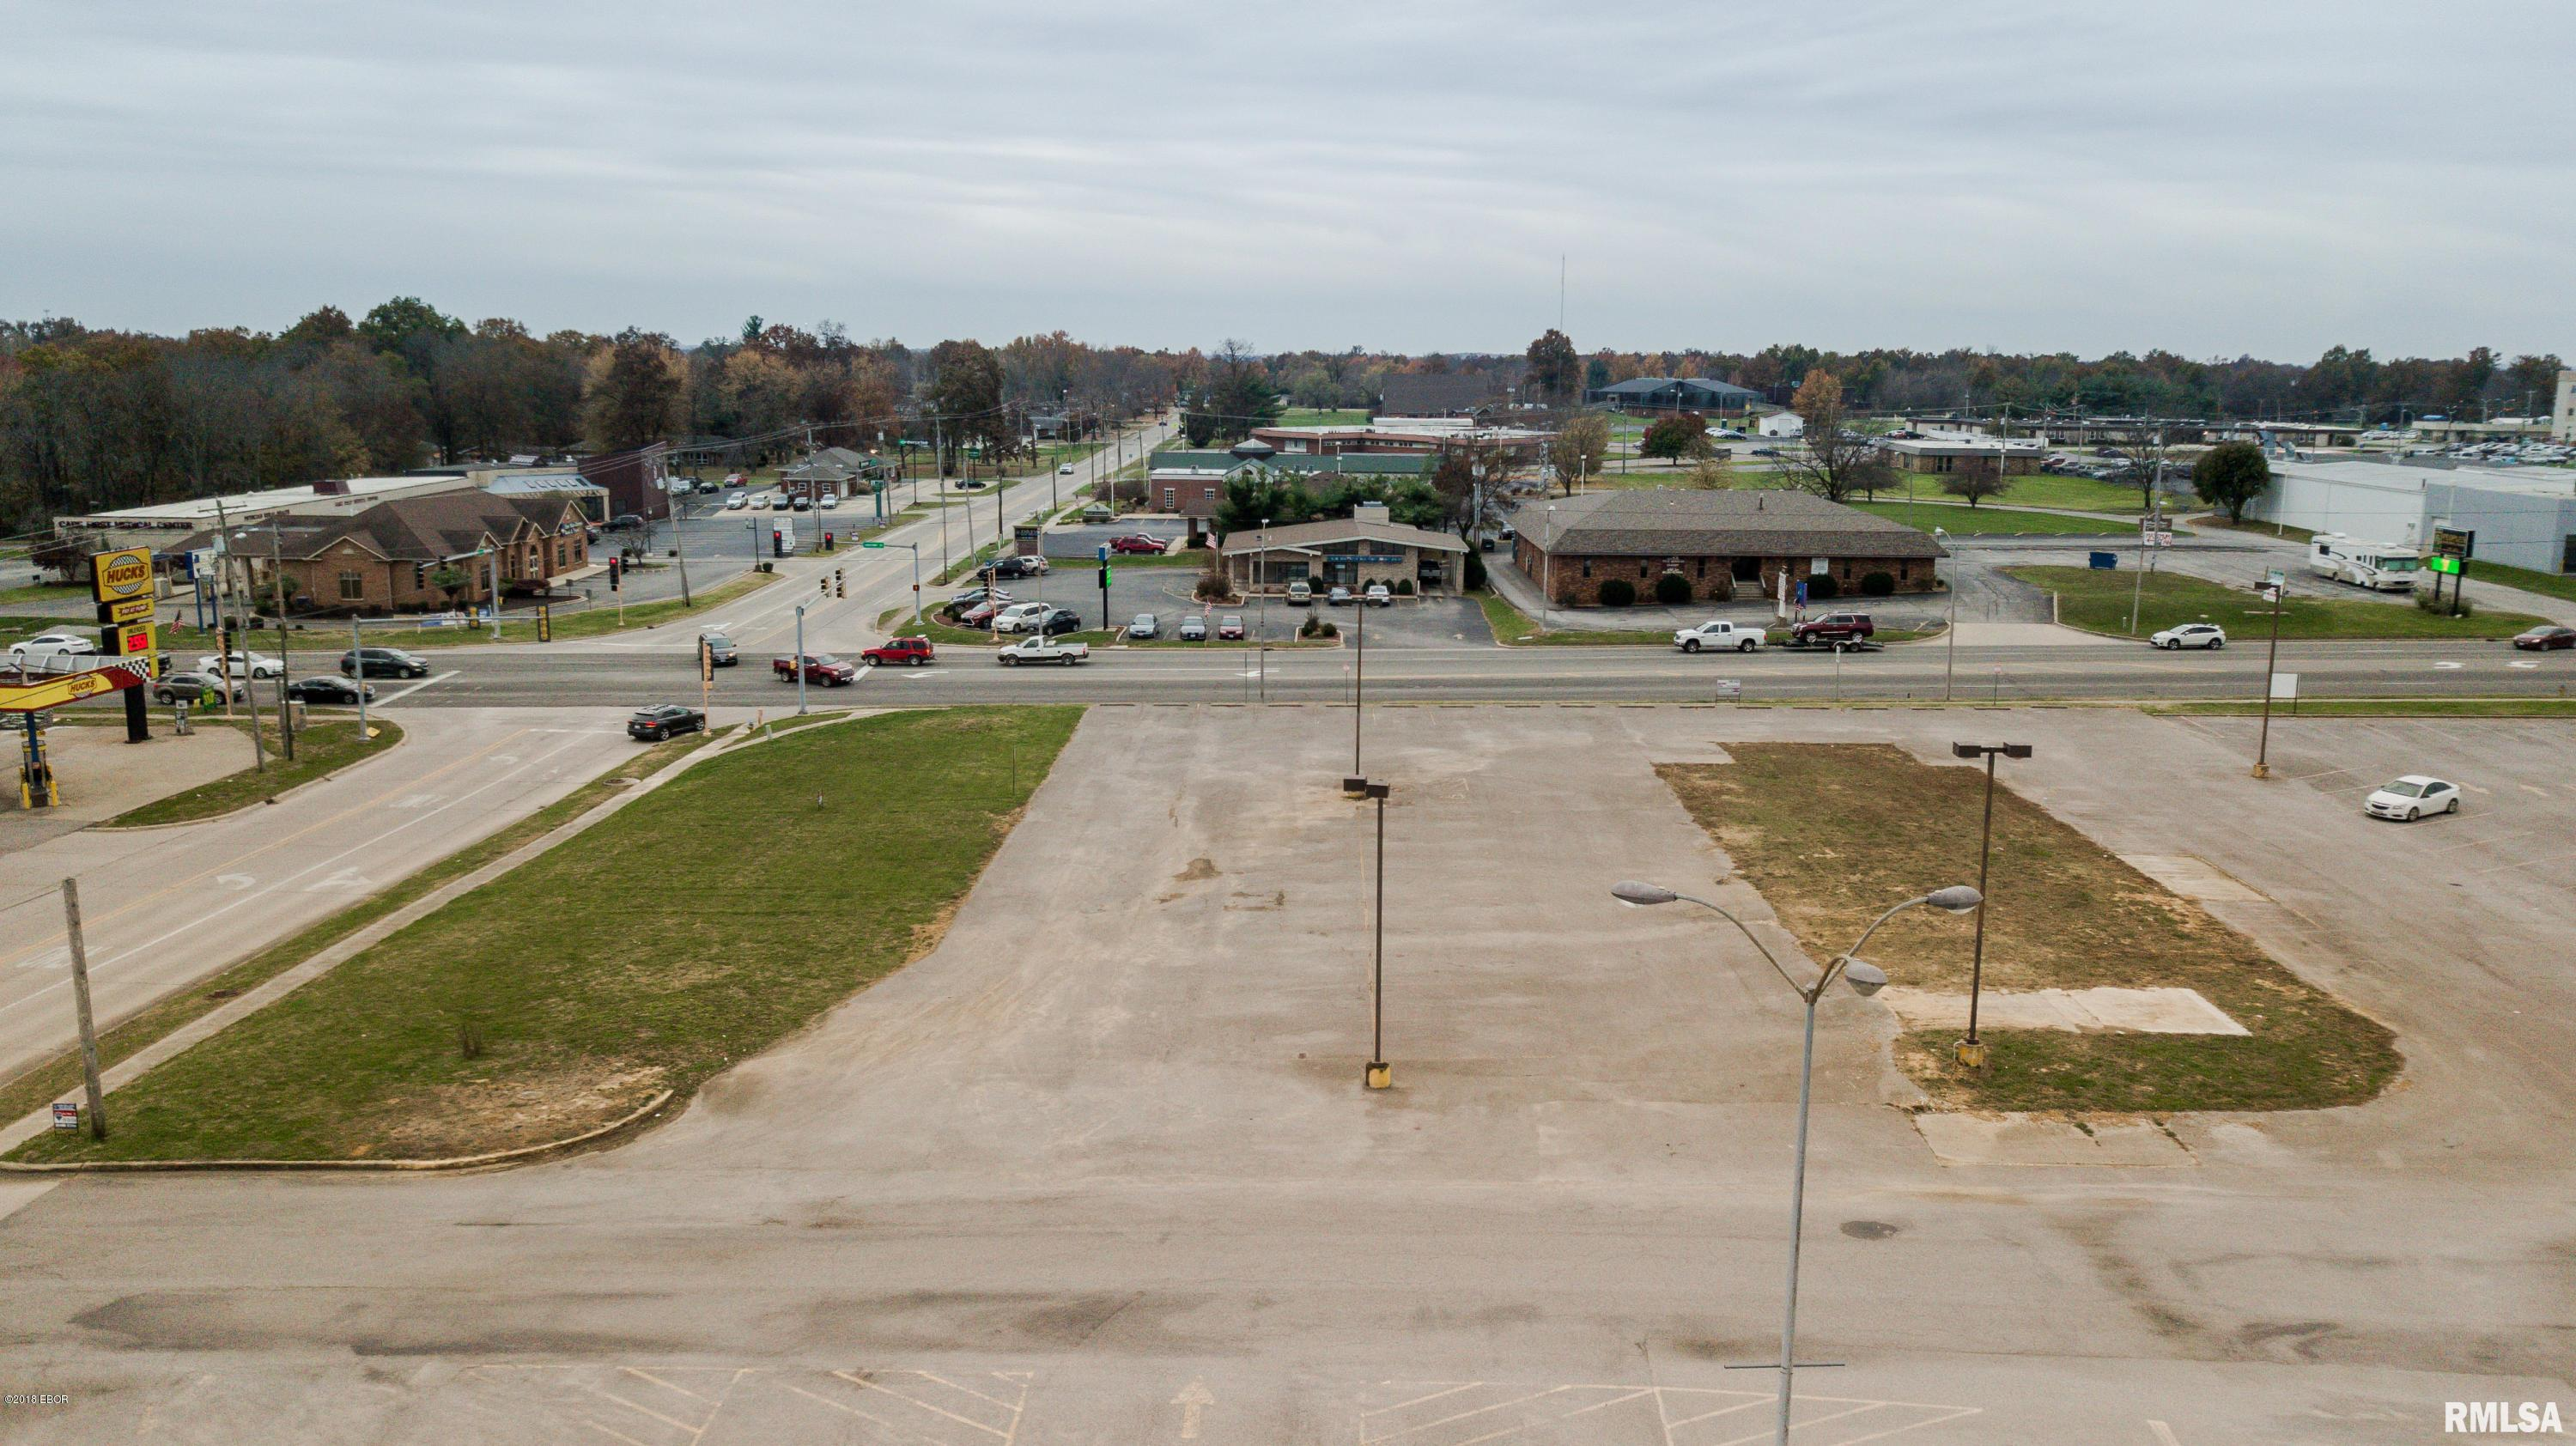 26,000 cars daily, four way intersection with traffic lights, 1.10 acres with two entrances, and zoned commercial. This location has it all. More property is available from the owners of the K-Mart building.Disclosure: Attached